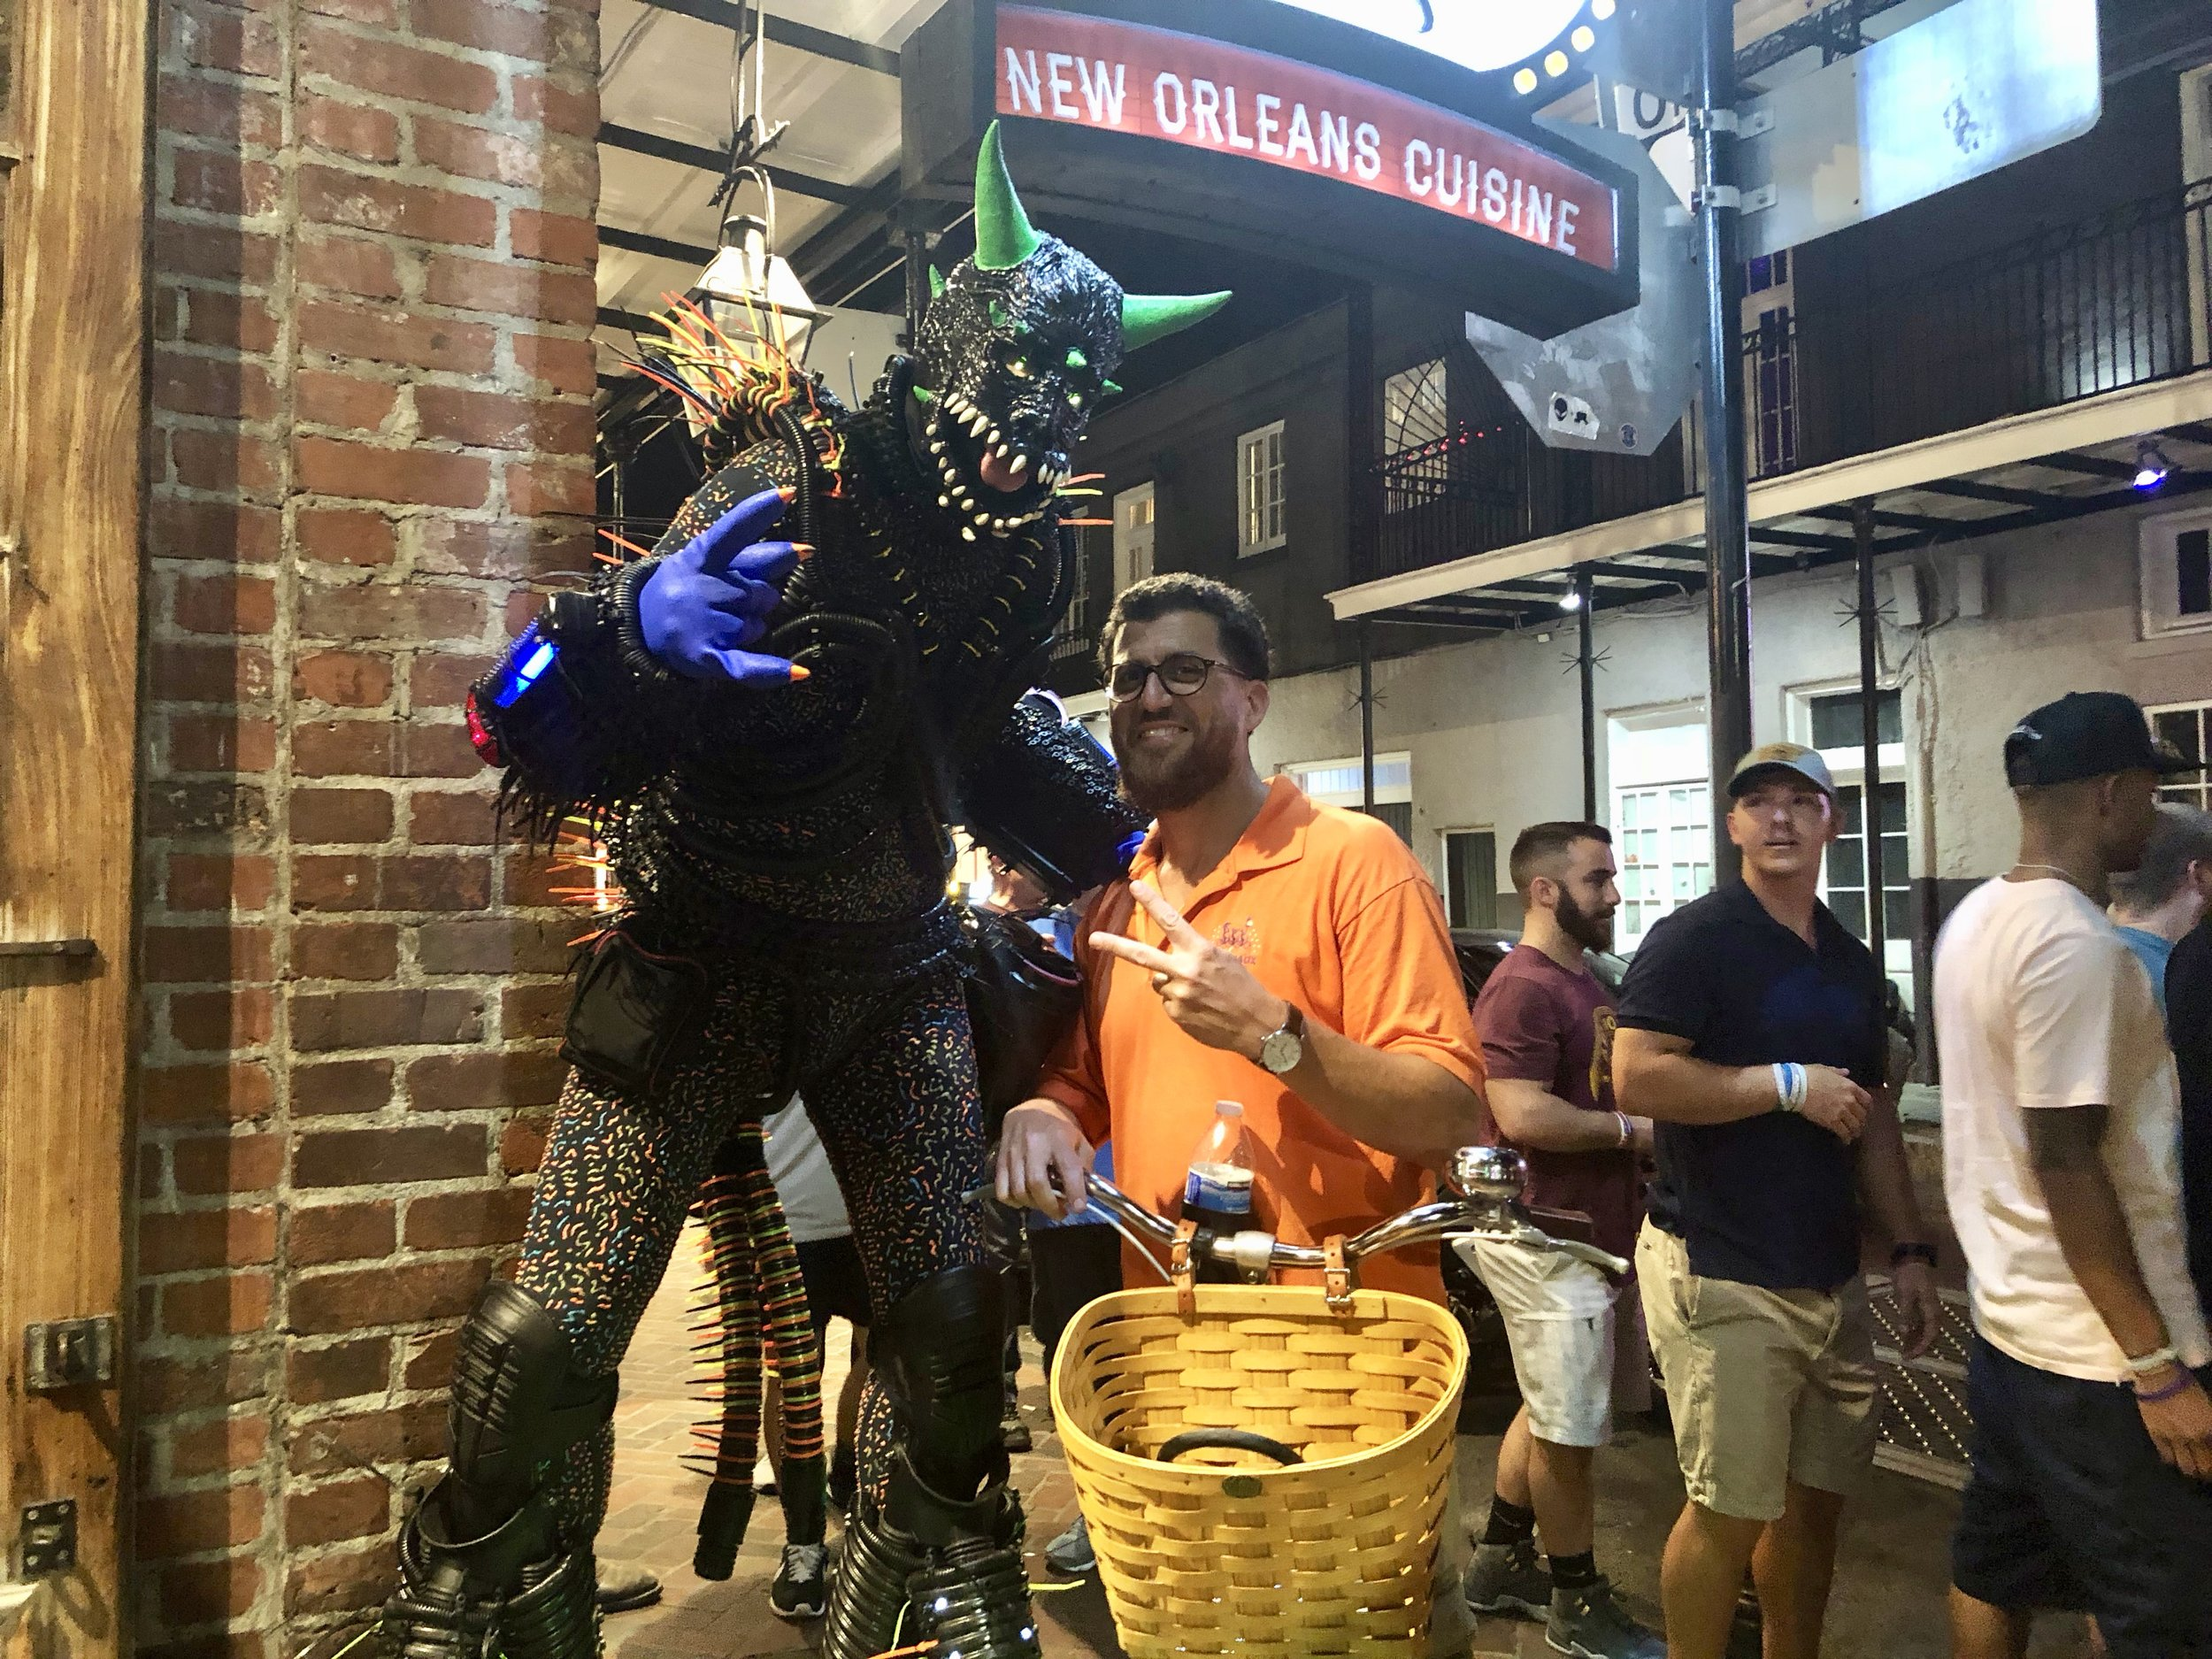 One of the many aliens I've set up with hustles in the French Quarter…and as Remy said, they can walk around New Orleans and fit right in without setting off any alarms.